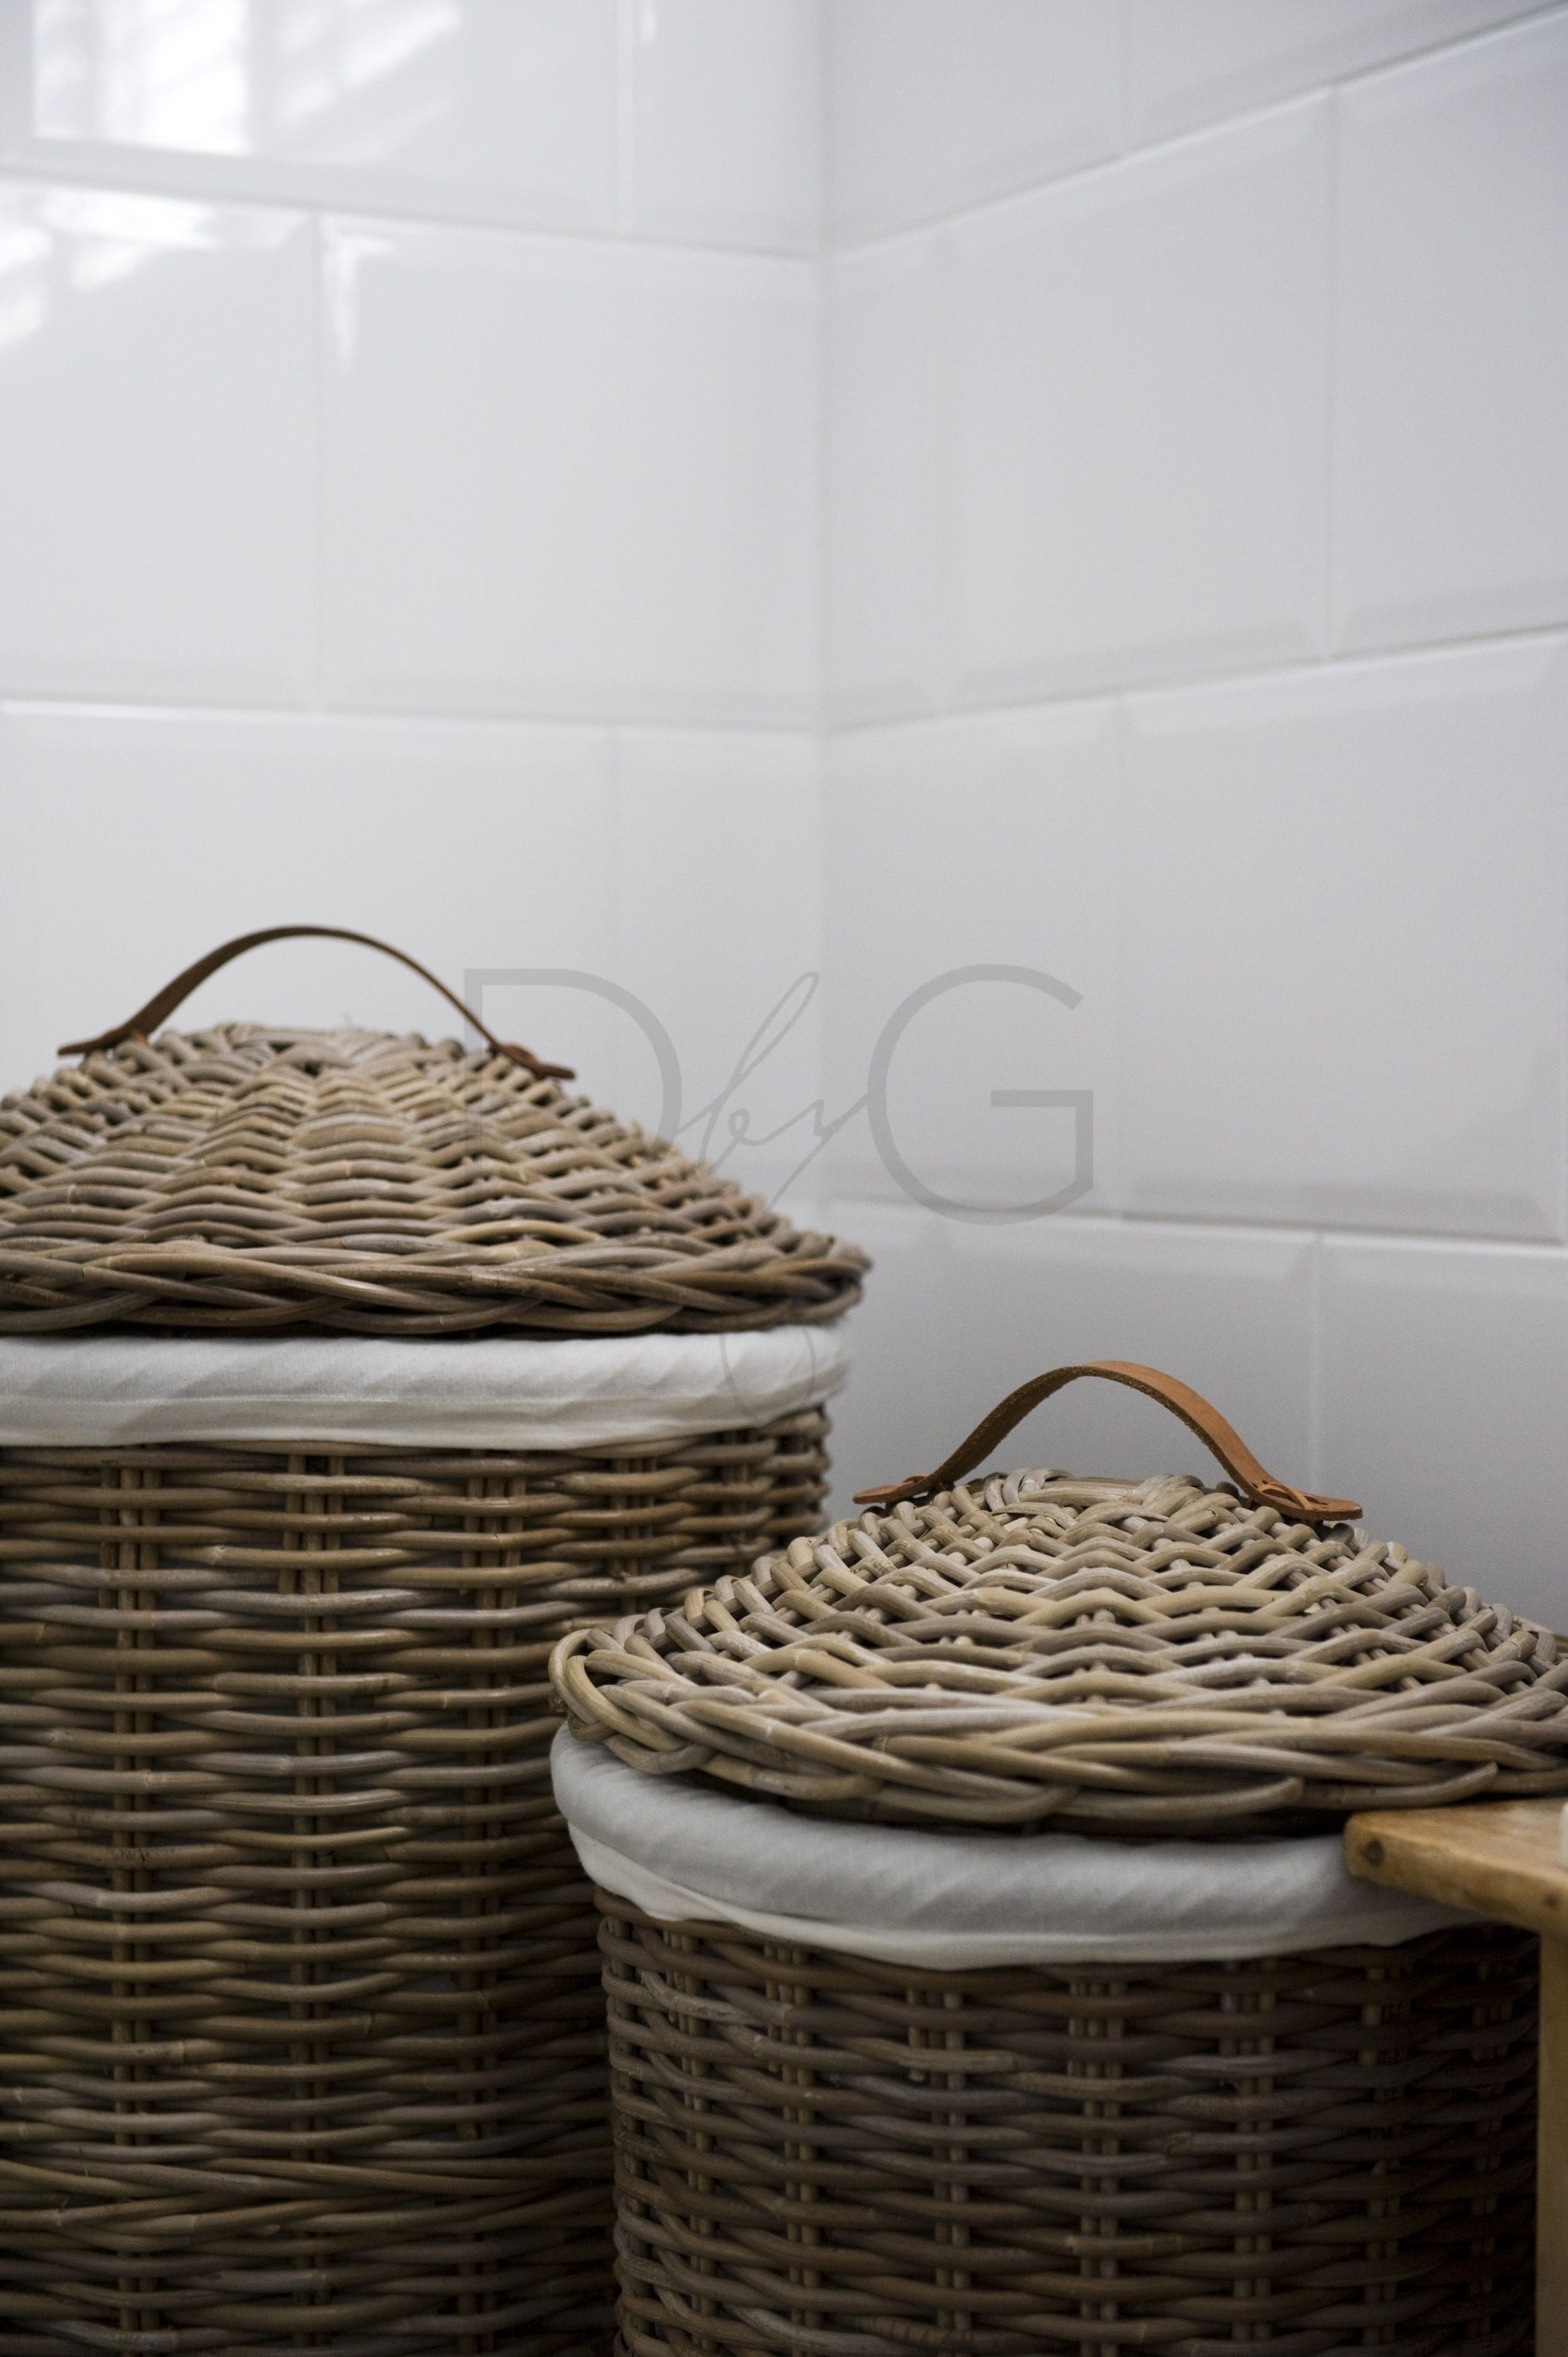 I Like The Idea Of Clean White 4x4 Or Subway Tile And Ceramics Then Walls Can Be Painted Any Color And A Vareity Of Closures Can Storage Baskets Decor Basket